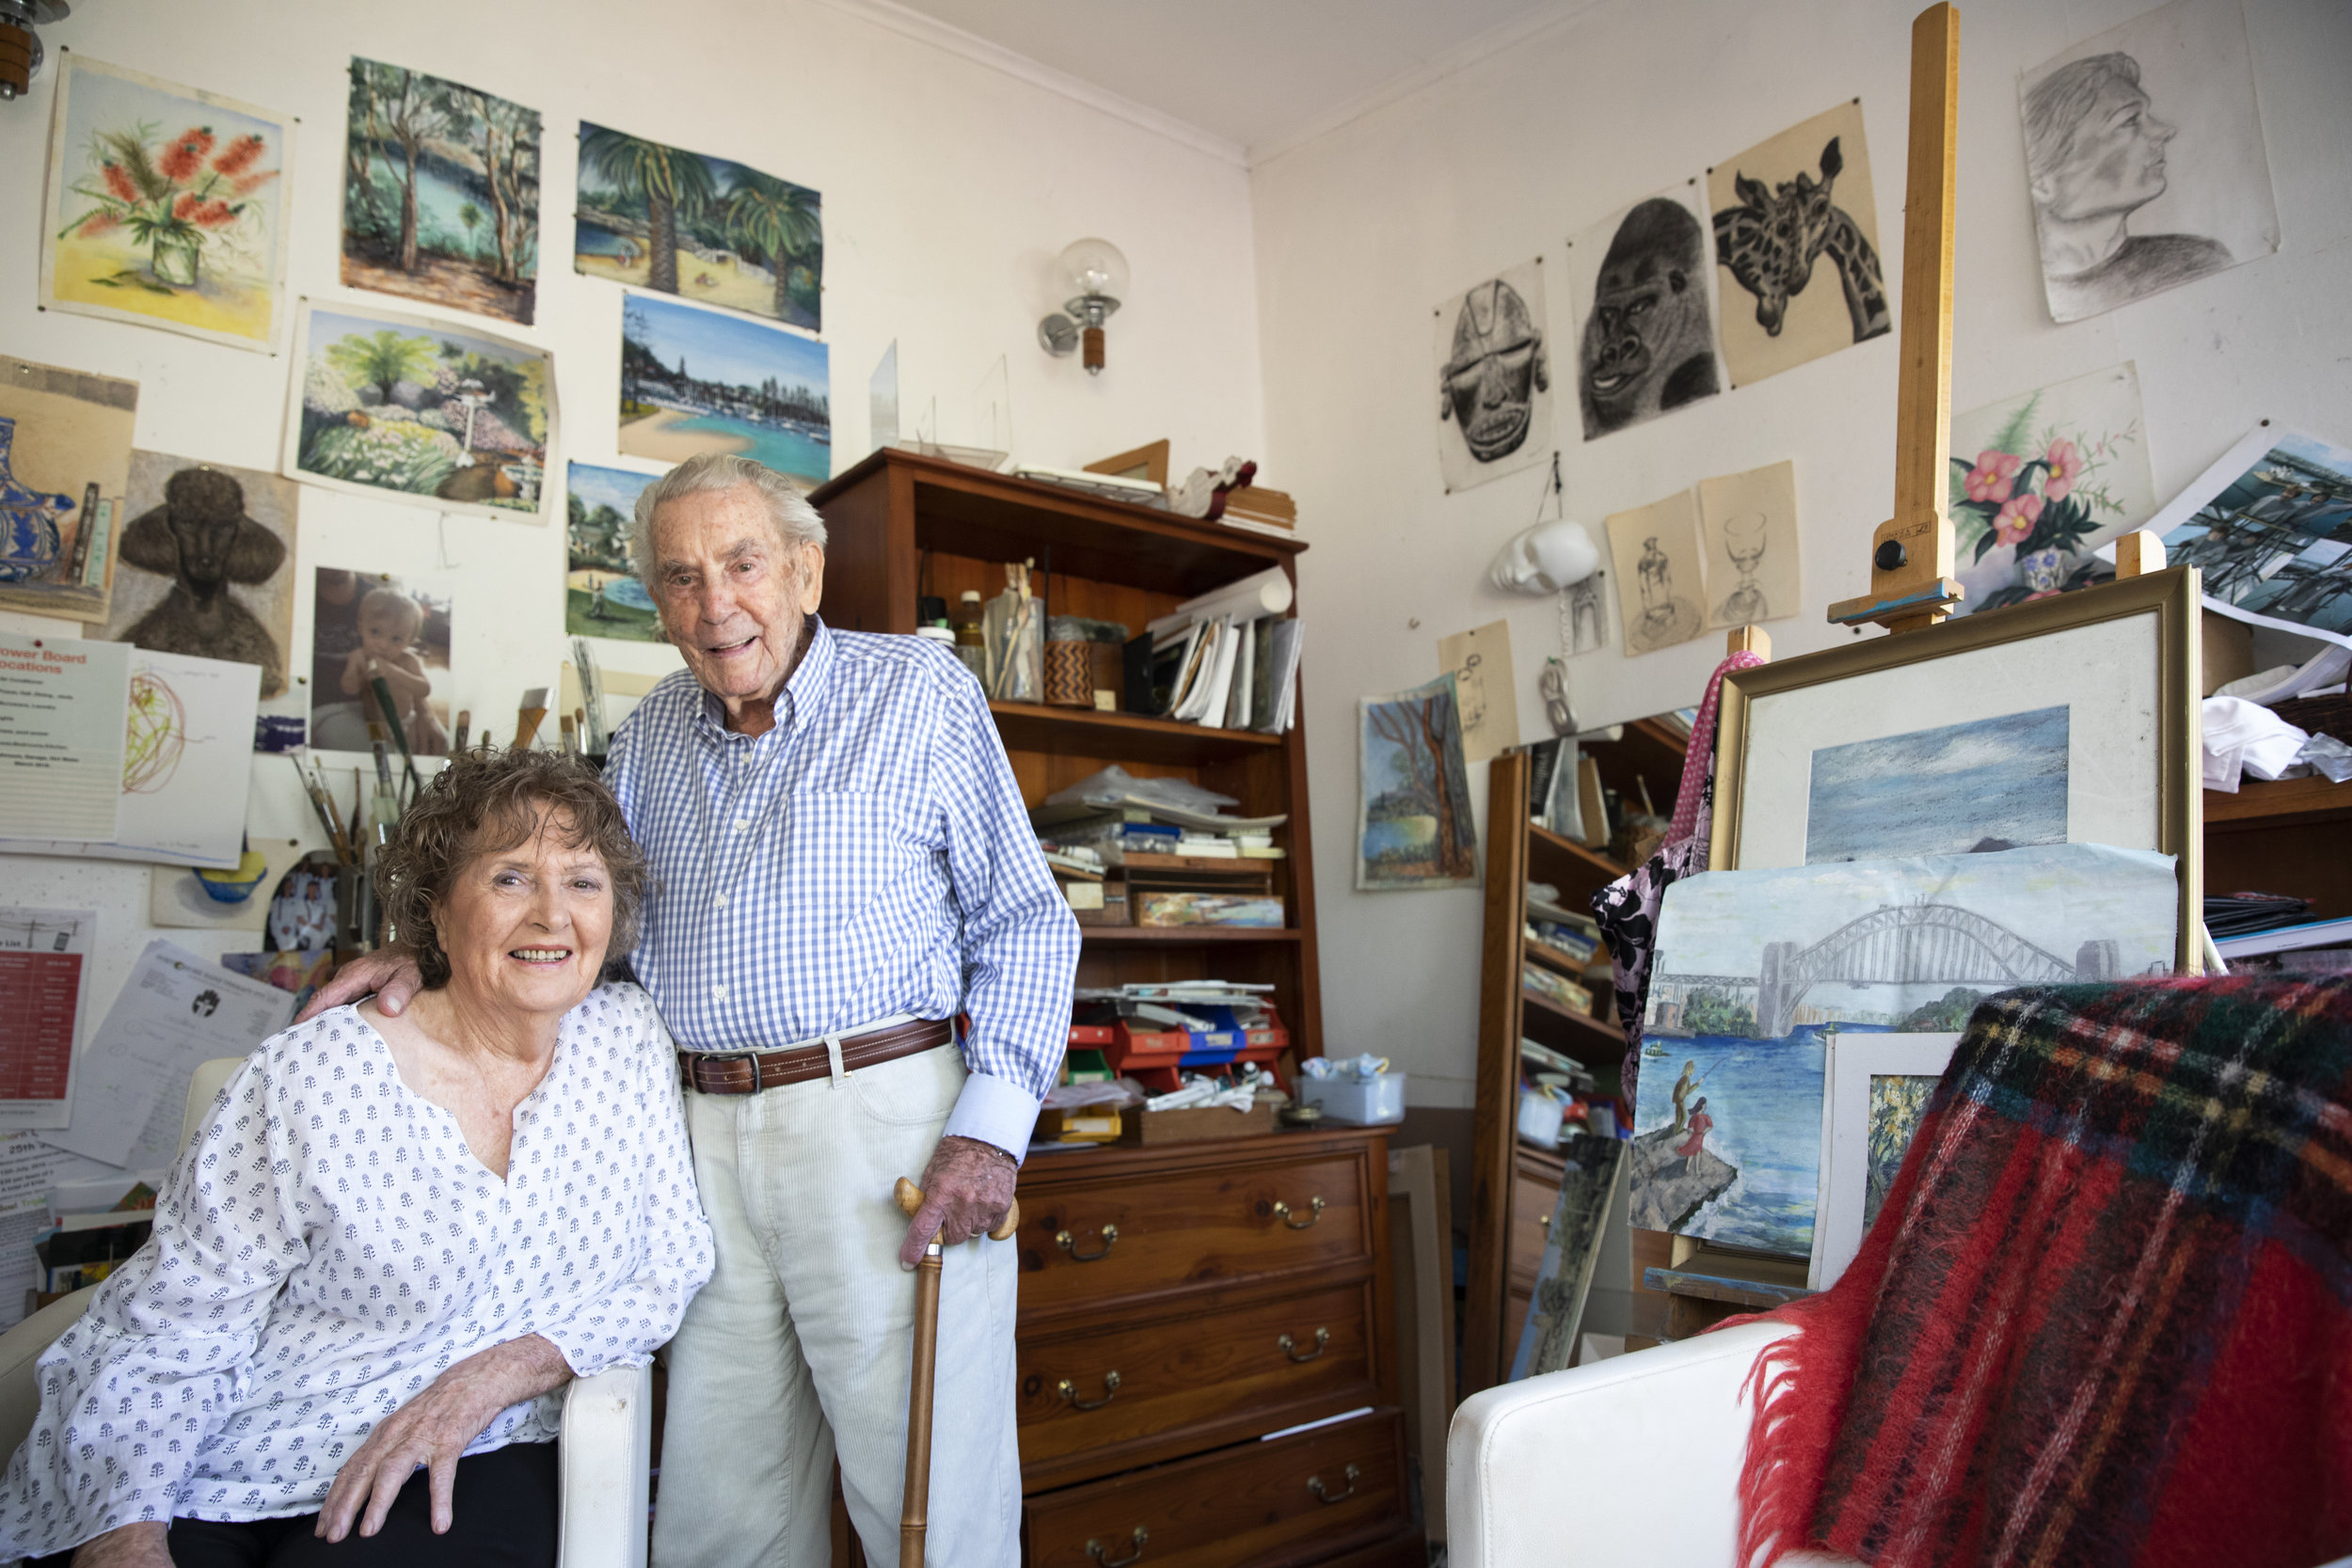 Geraldine and George Lockyer. Now in their 90's and married for more than 70 years.